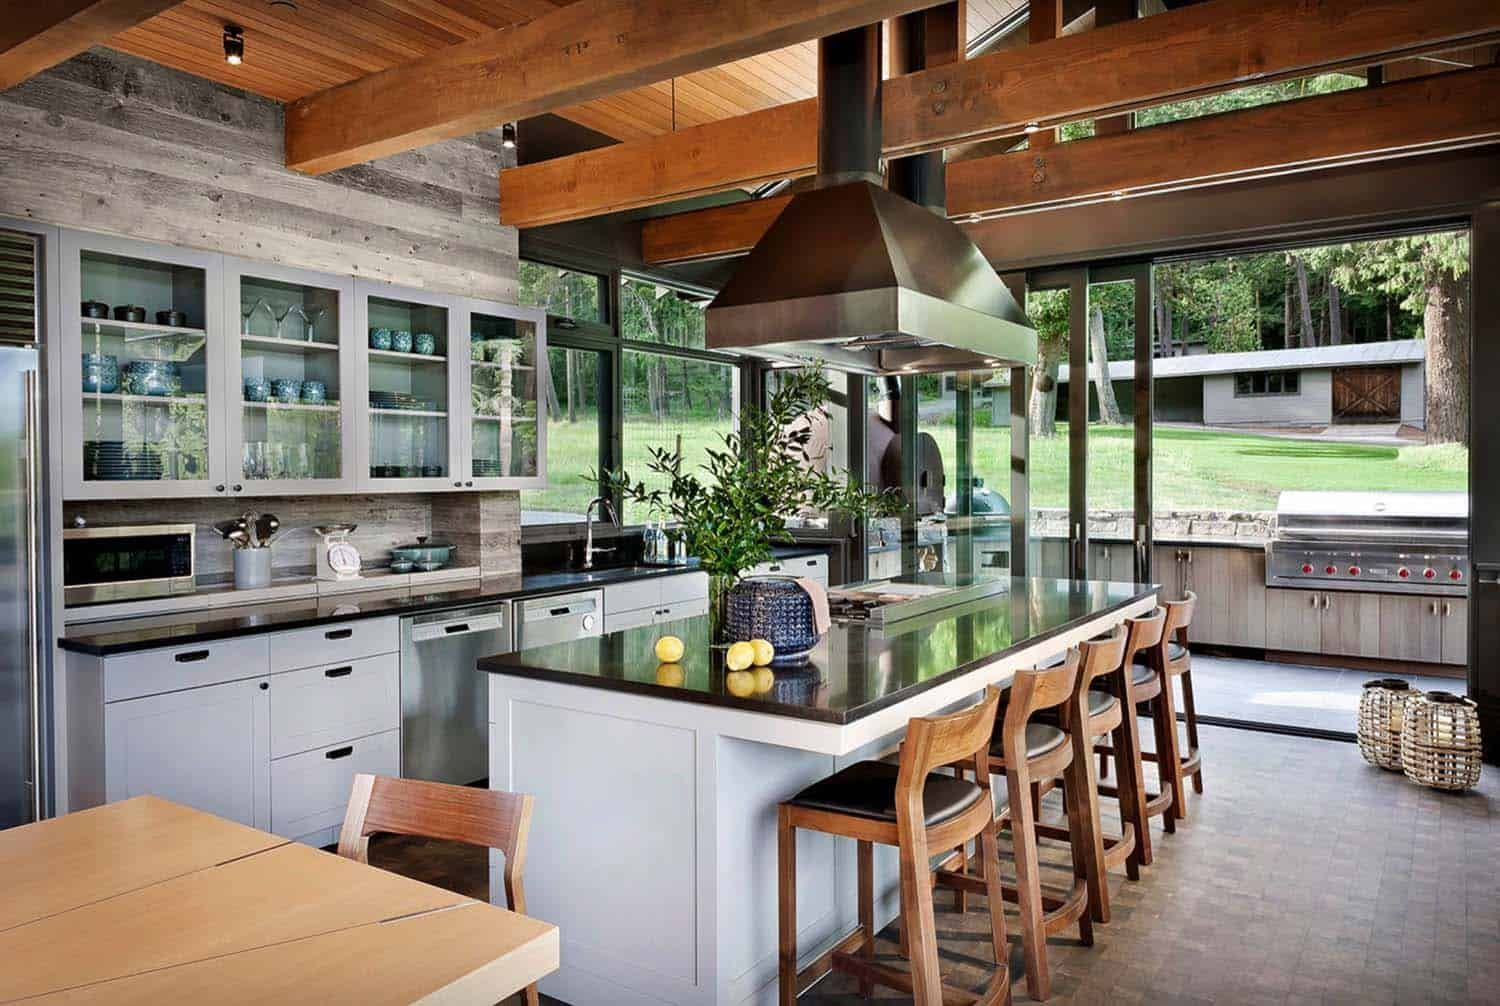 Modern Rustic Retreat Designed To Feel Like A Summer Camp On Orcas Island Rustic Kitchen Design Rustic Kitchen Interior Design Kitchen